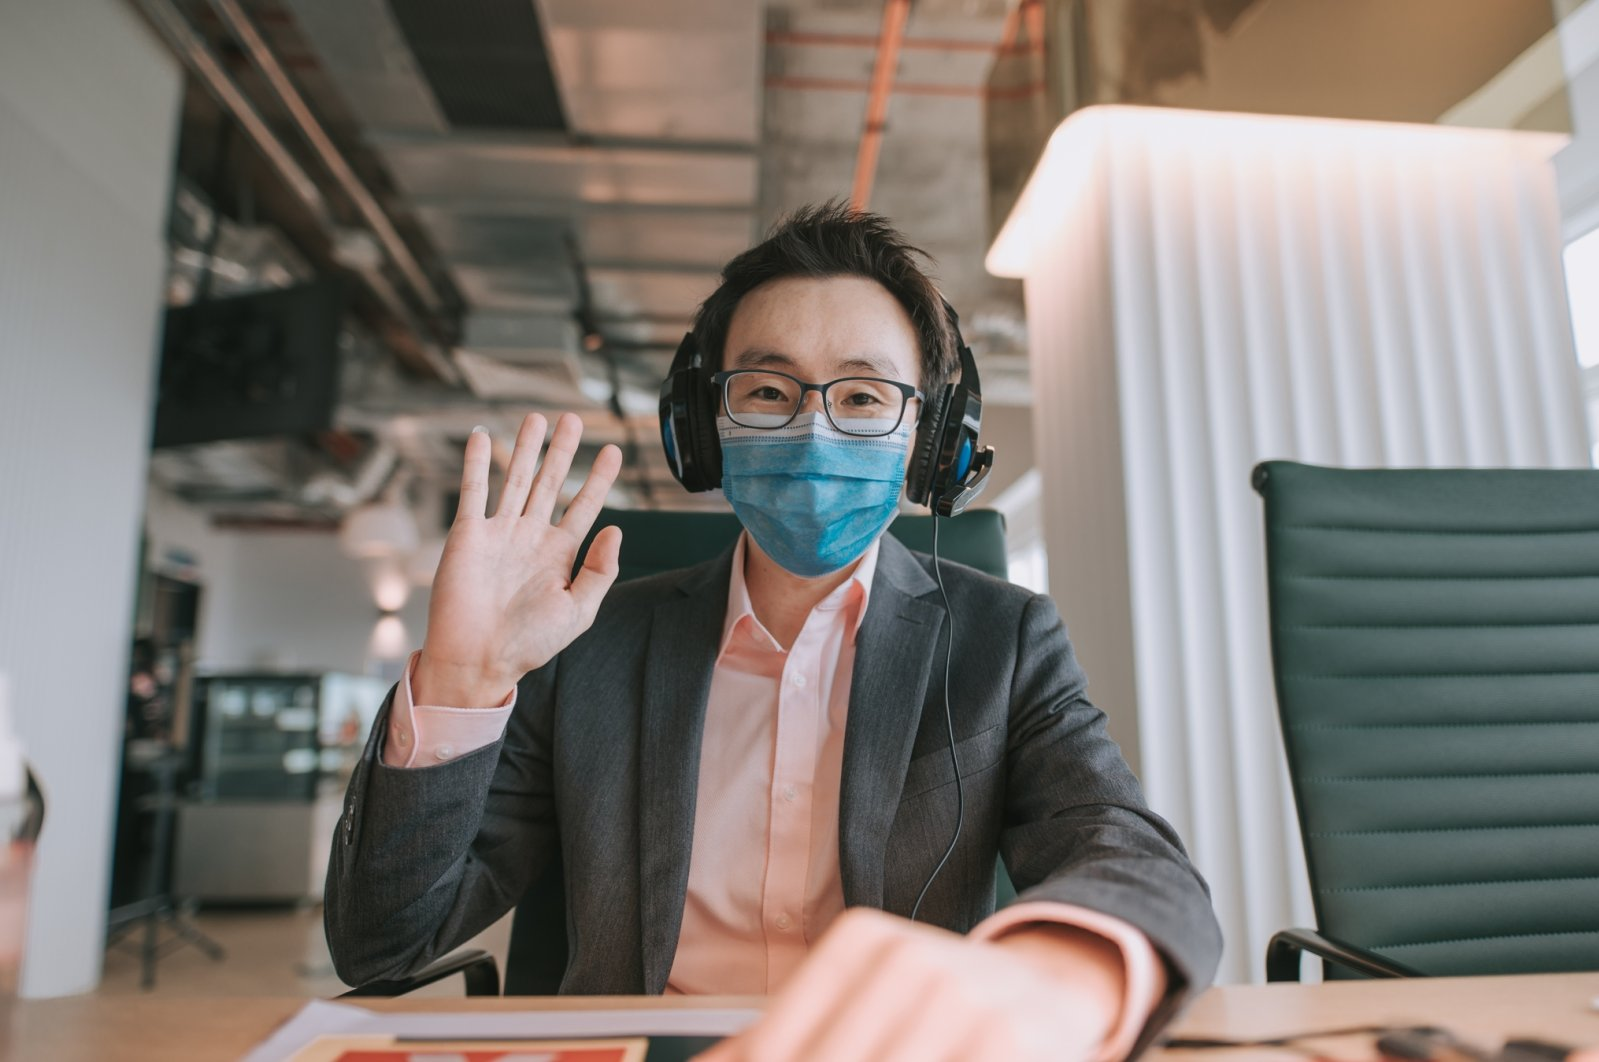 Pandemic or not, job search is brutal but with these expert tips you can ace your next interview. (iStock Photo)